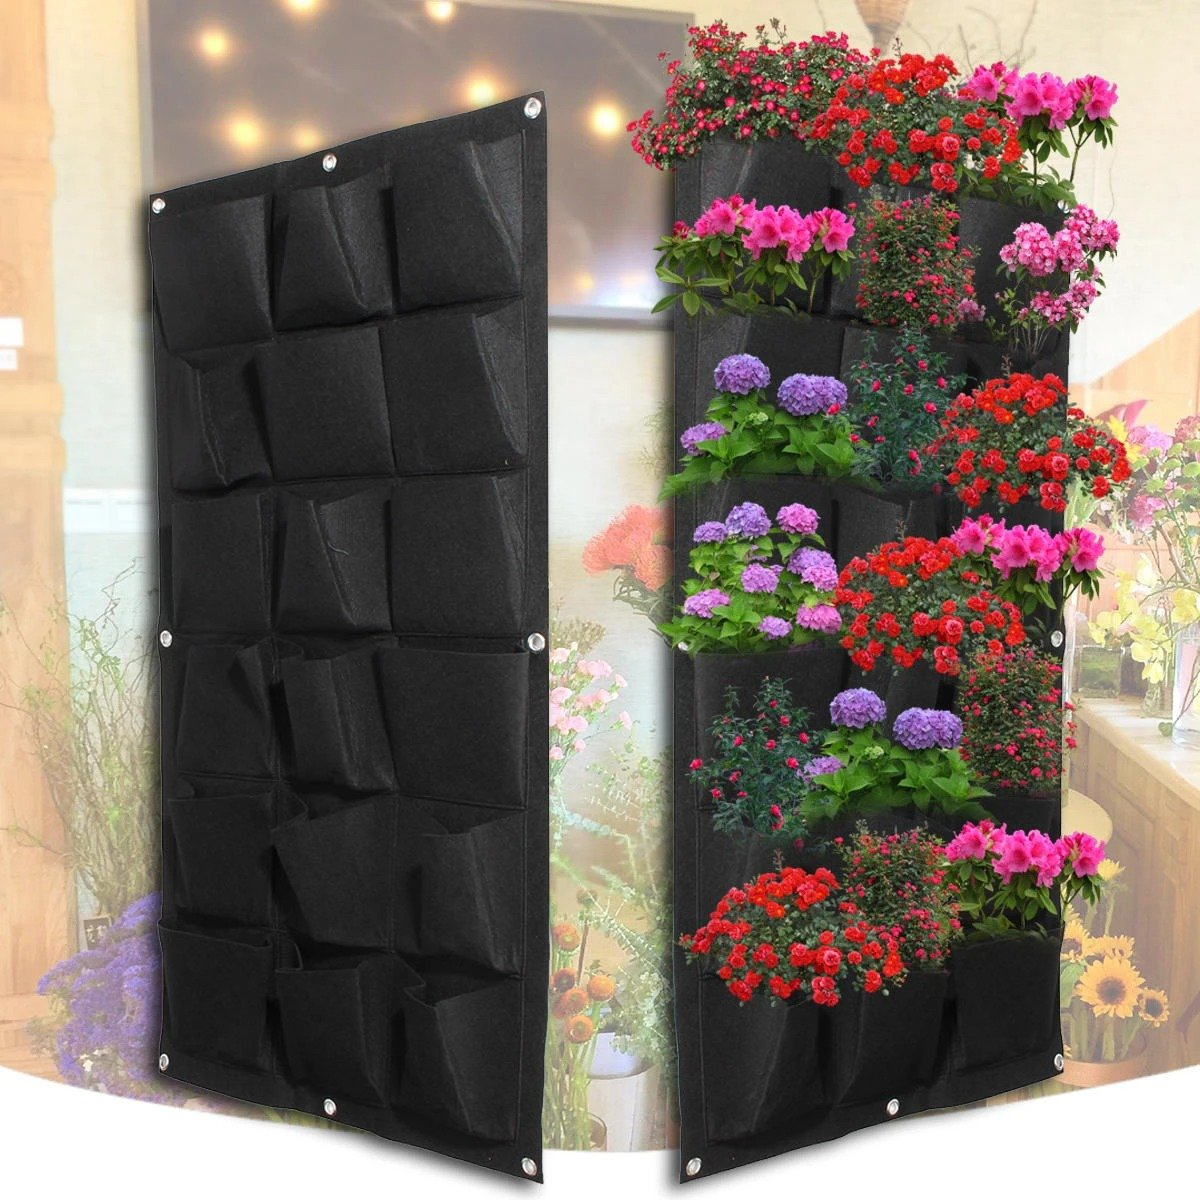 Pocket Planting Bag Garden Wall Vertical Flower Herb Greening Hanging Outdoor